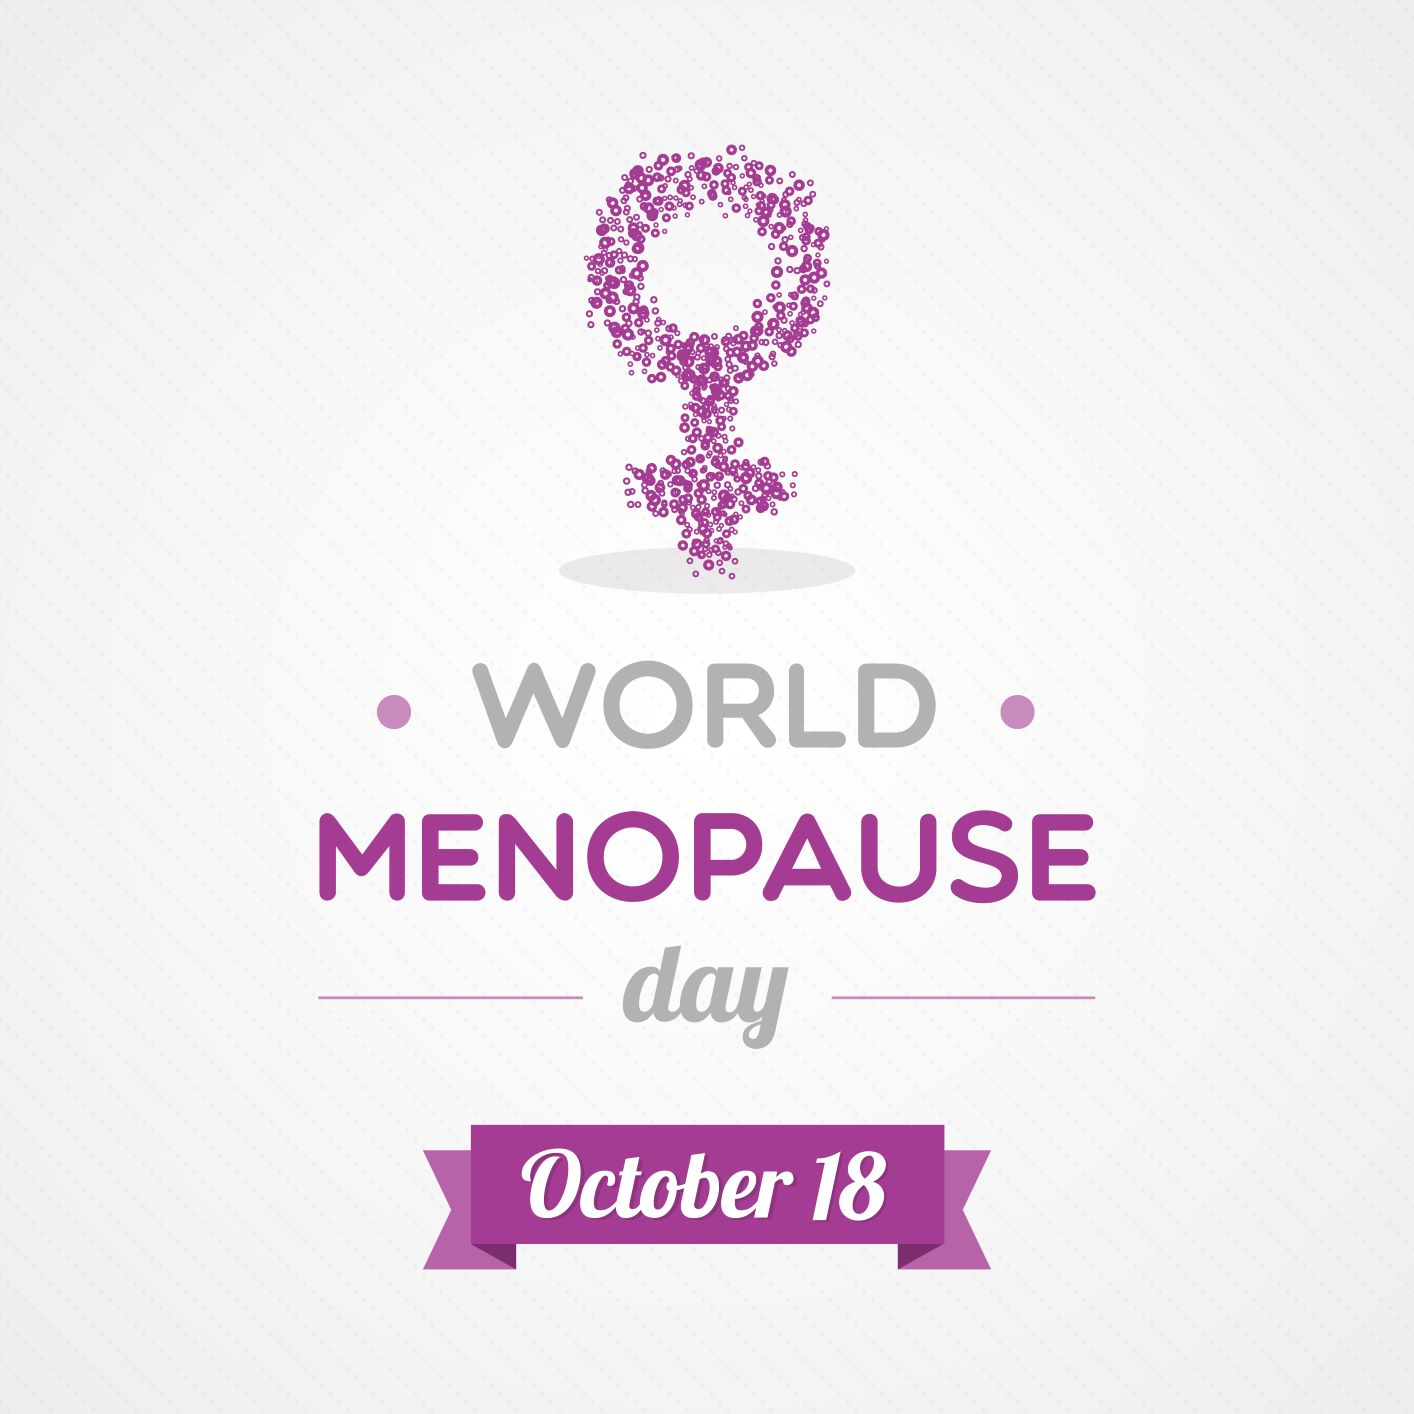 Oct. 18 is World Menopause Day, and we're celebrating